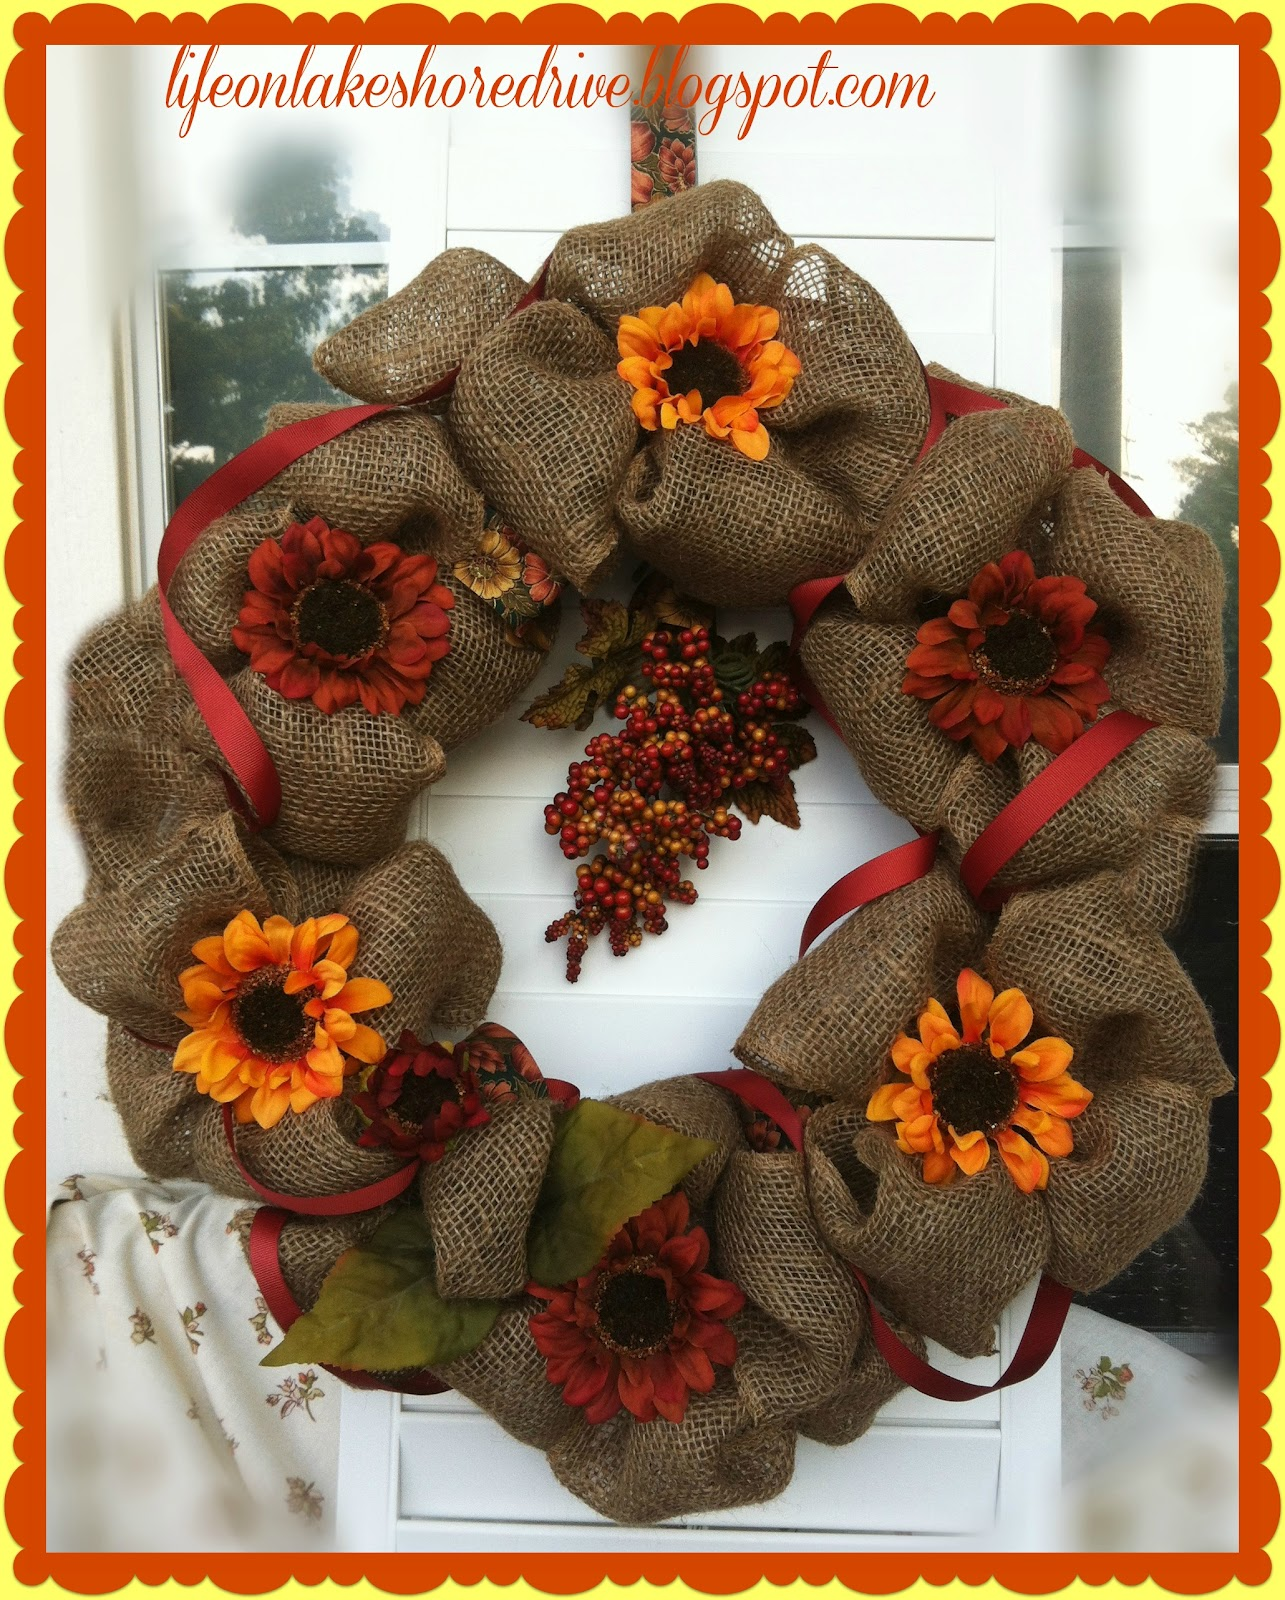 Fall Burlap Wreath Tutorial Life On Lakeshore Drive